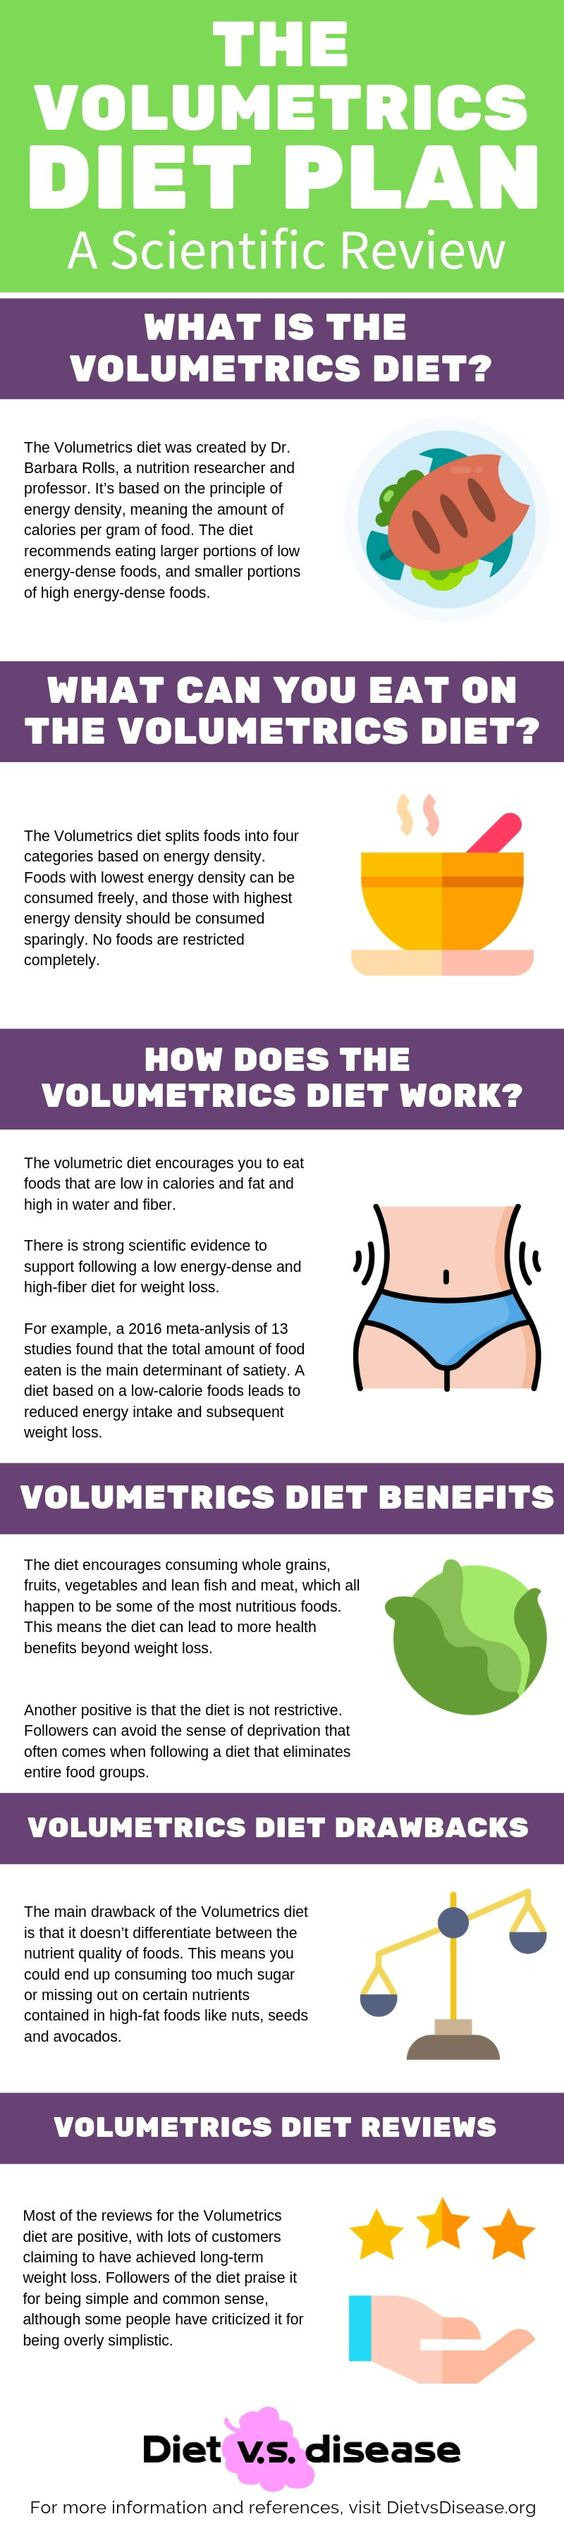 Volumetrics Diet Plan